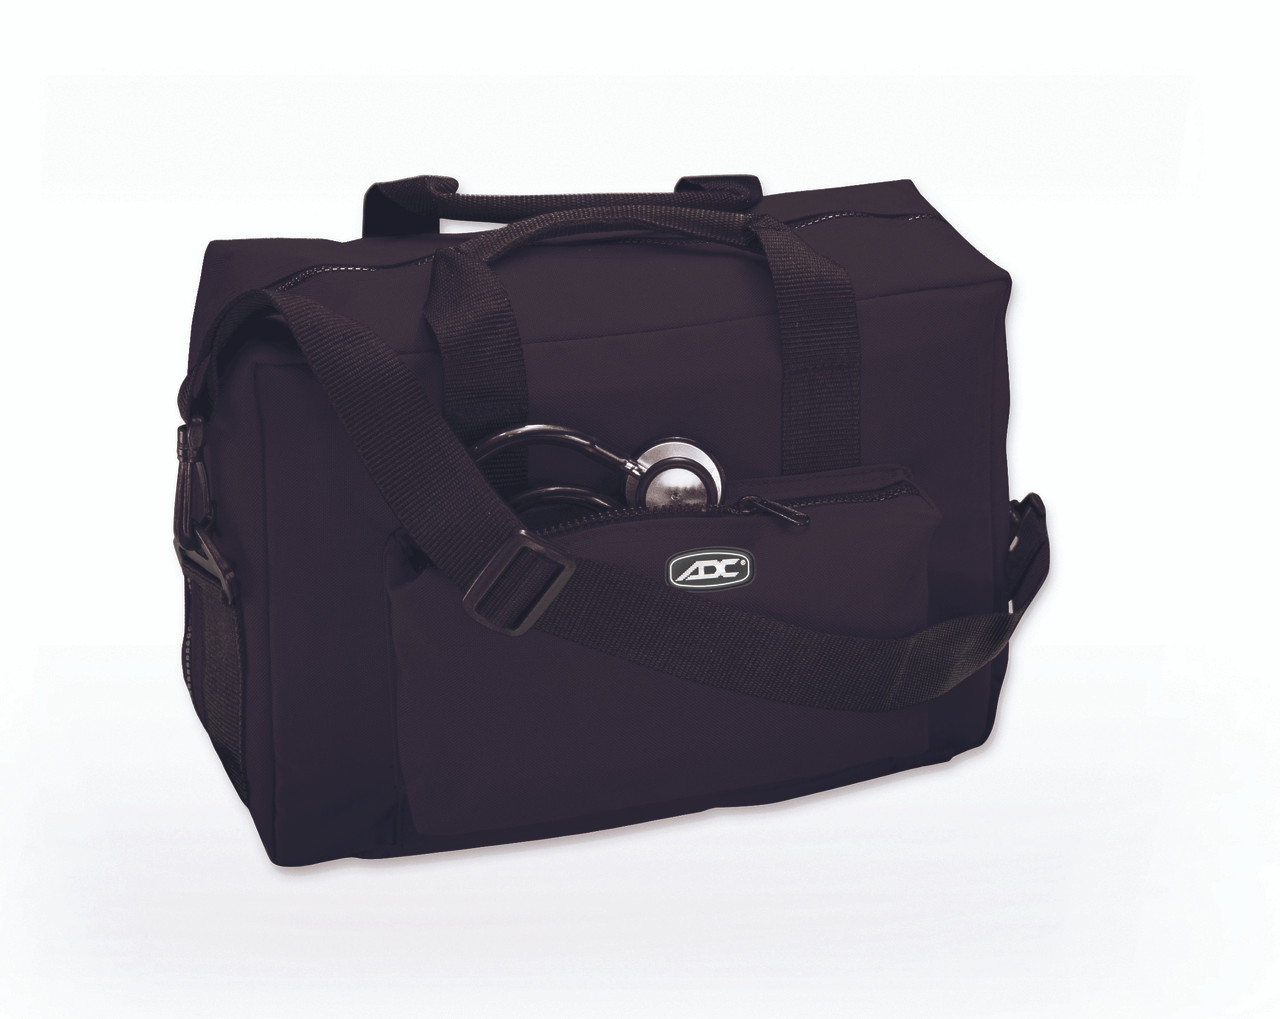 ADC Nylon Medical Bag, Black